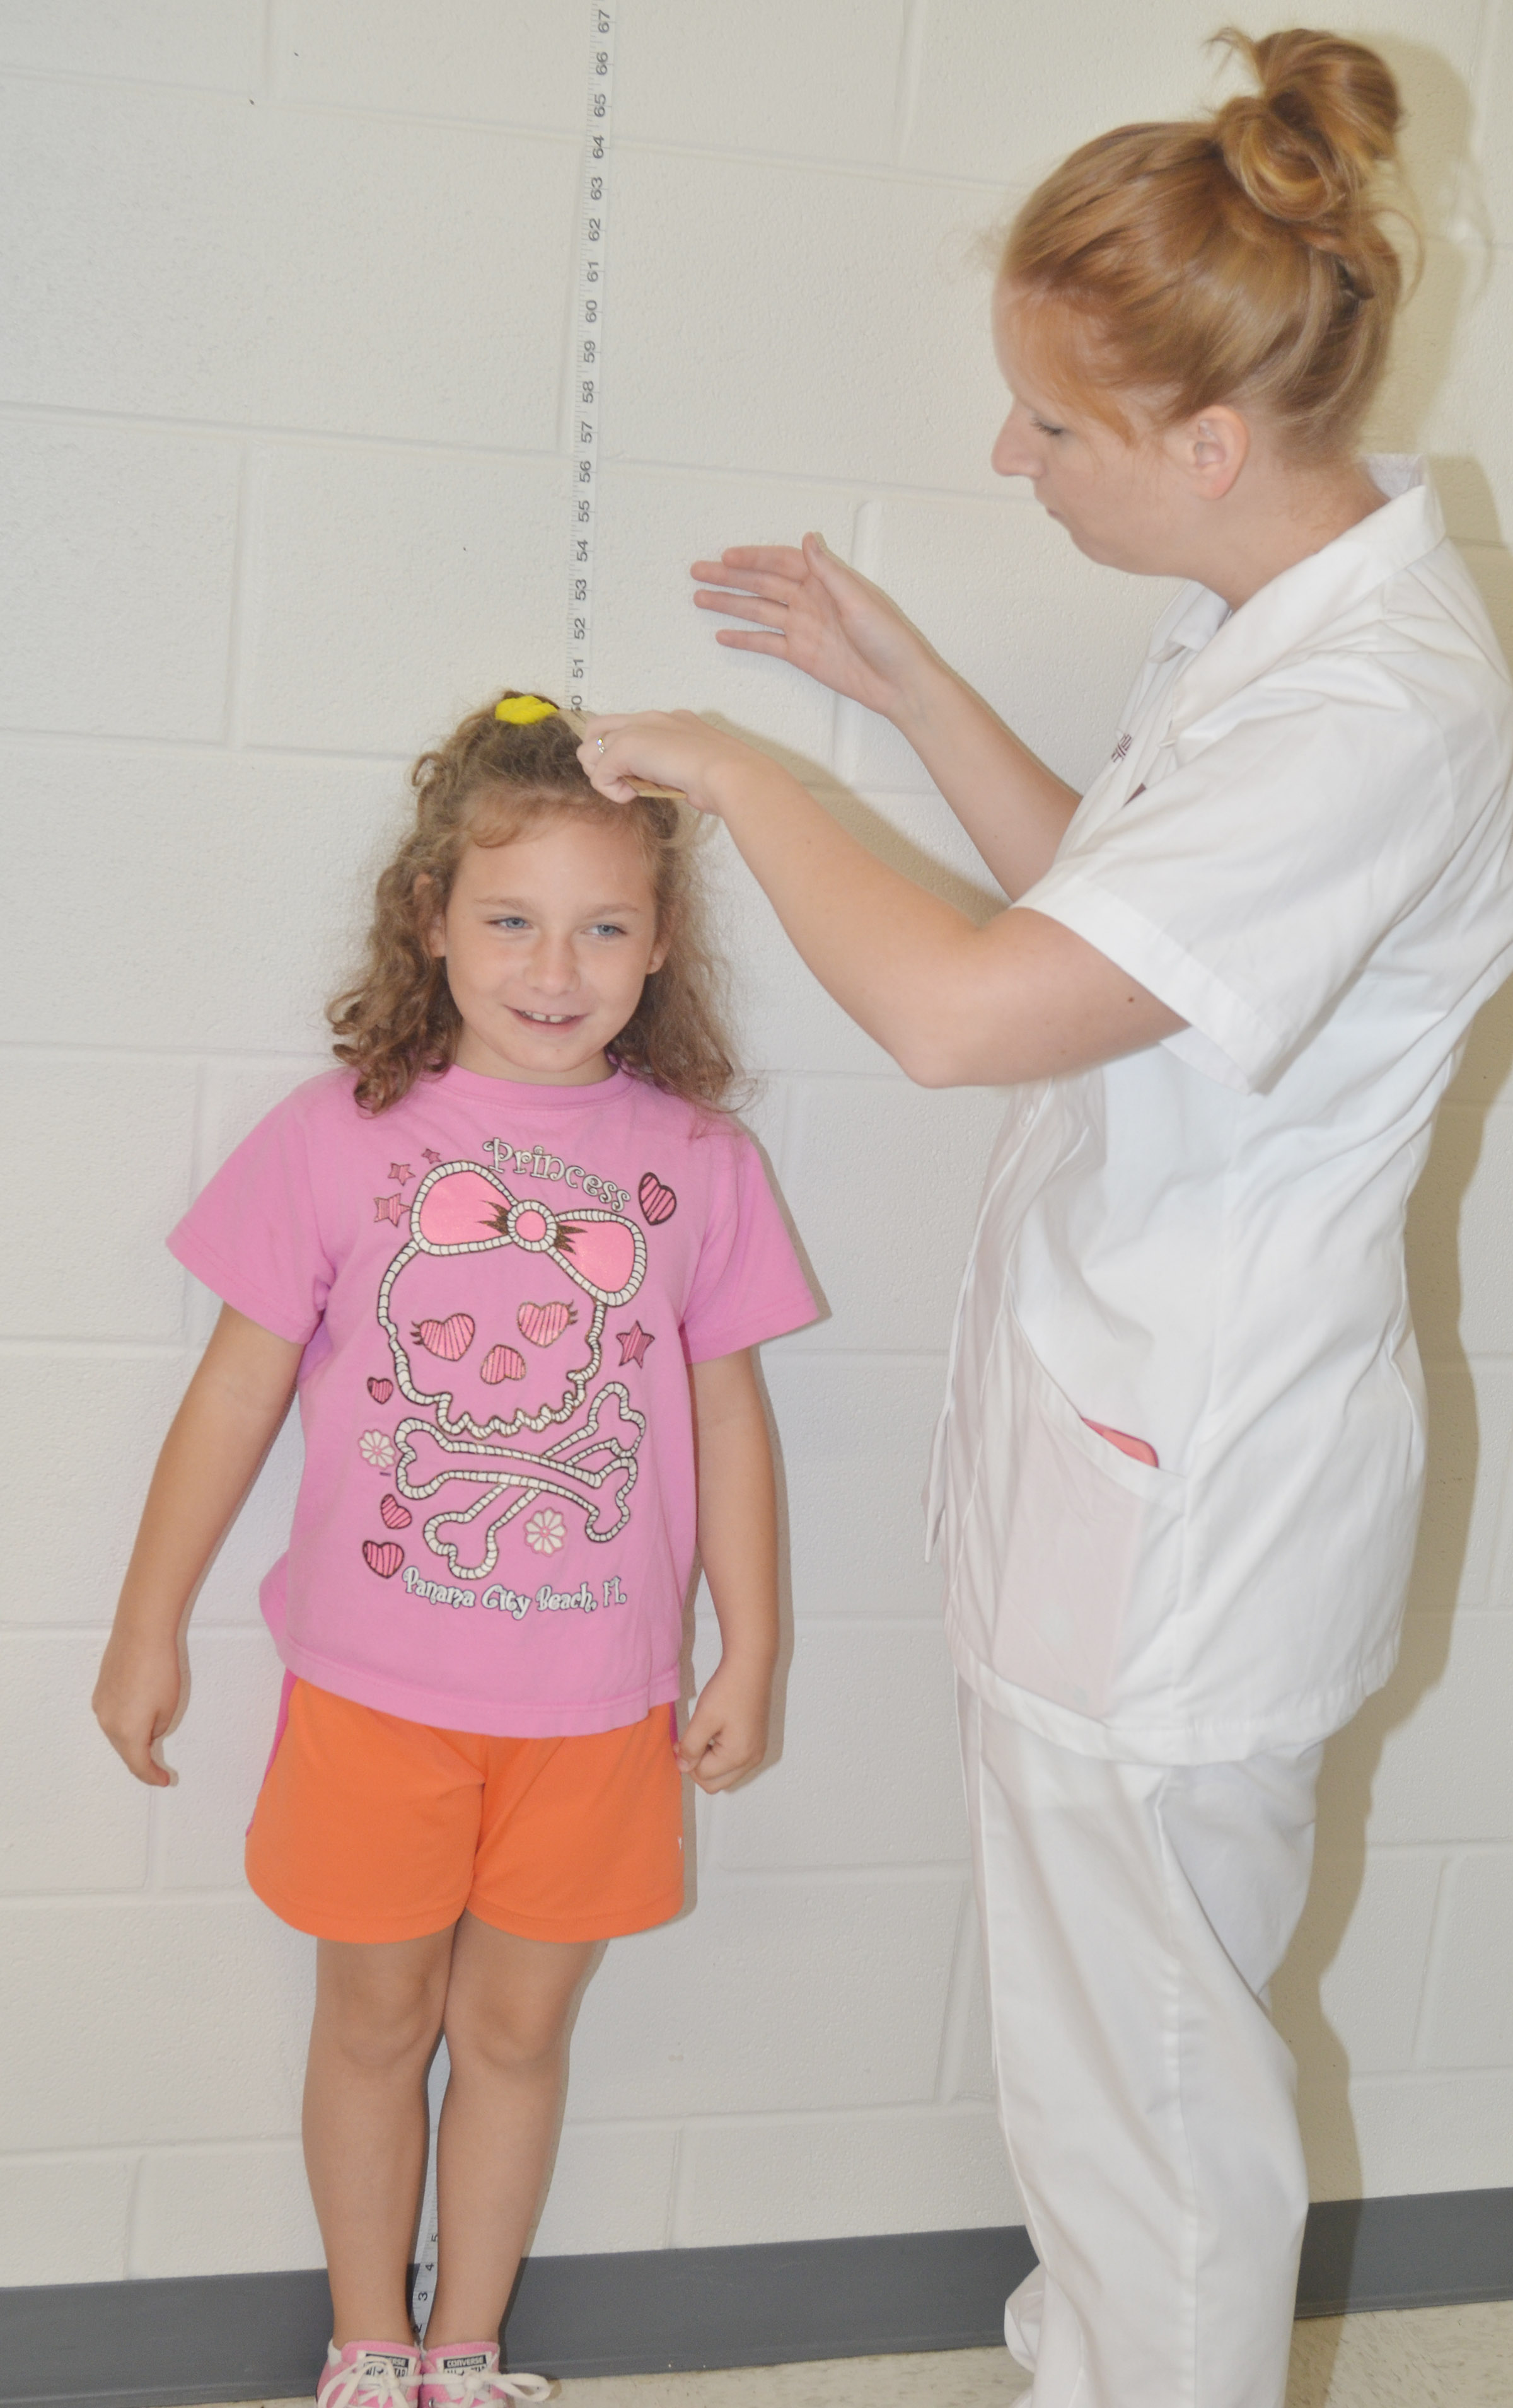 CES fourth-grader Aliyah Burton has her height measured by Campbellsville University nursing student Danielle Hundley.